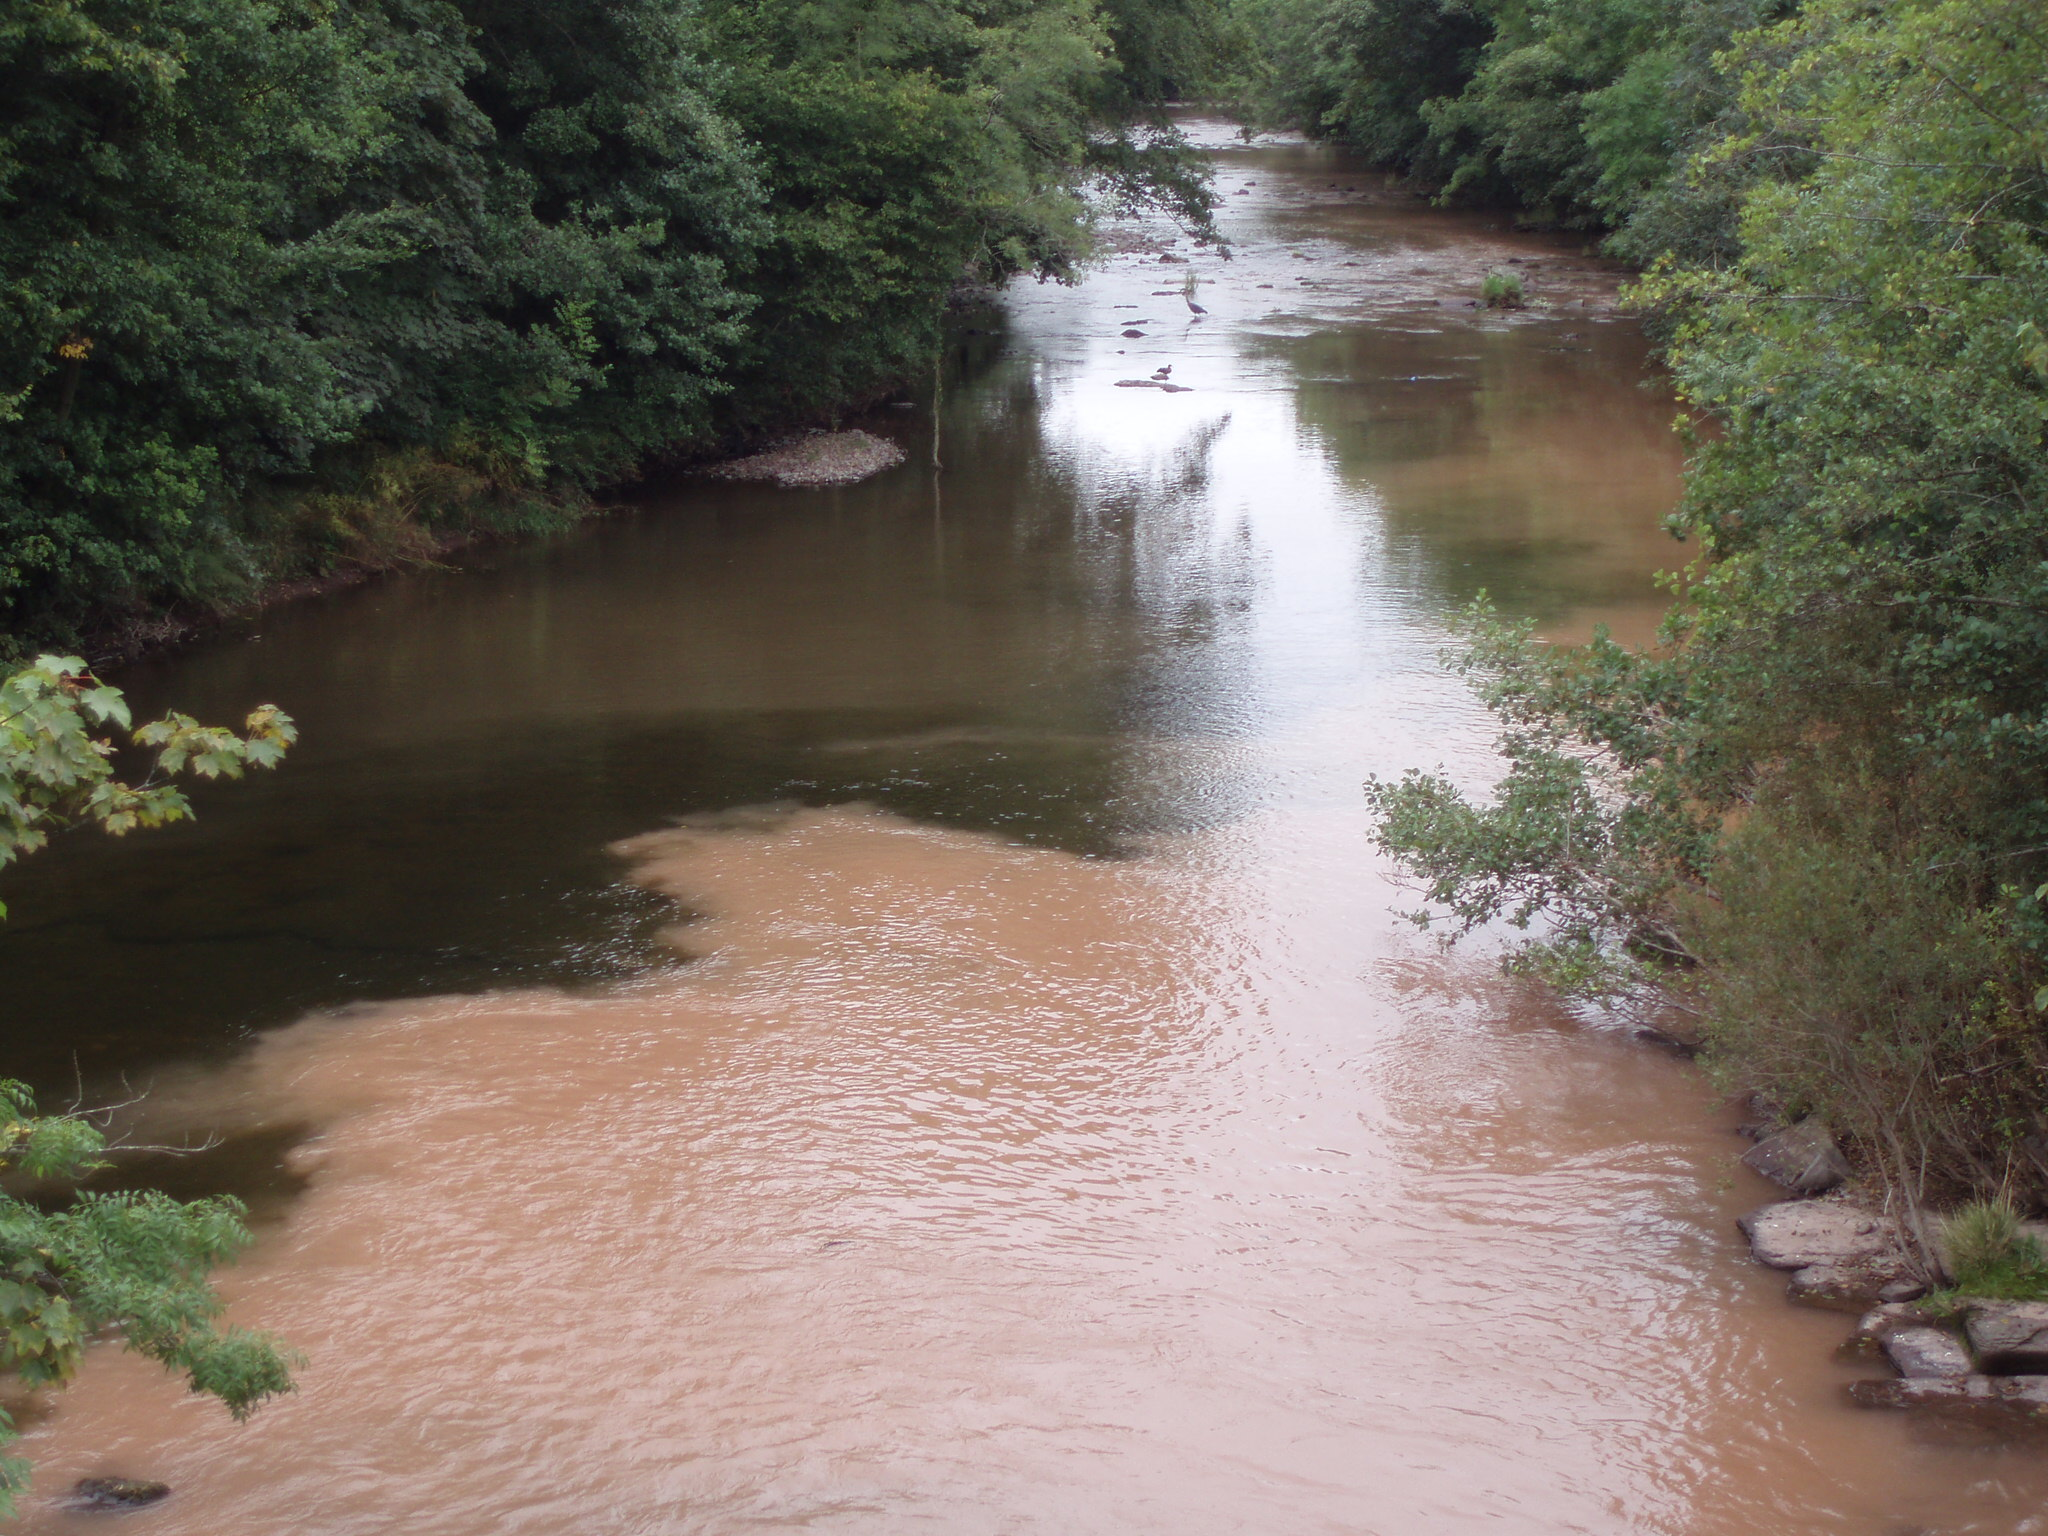 River pollution in a National Park